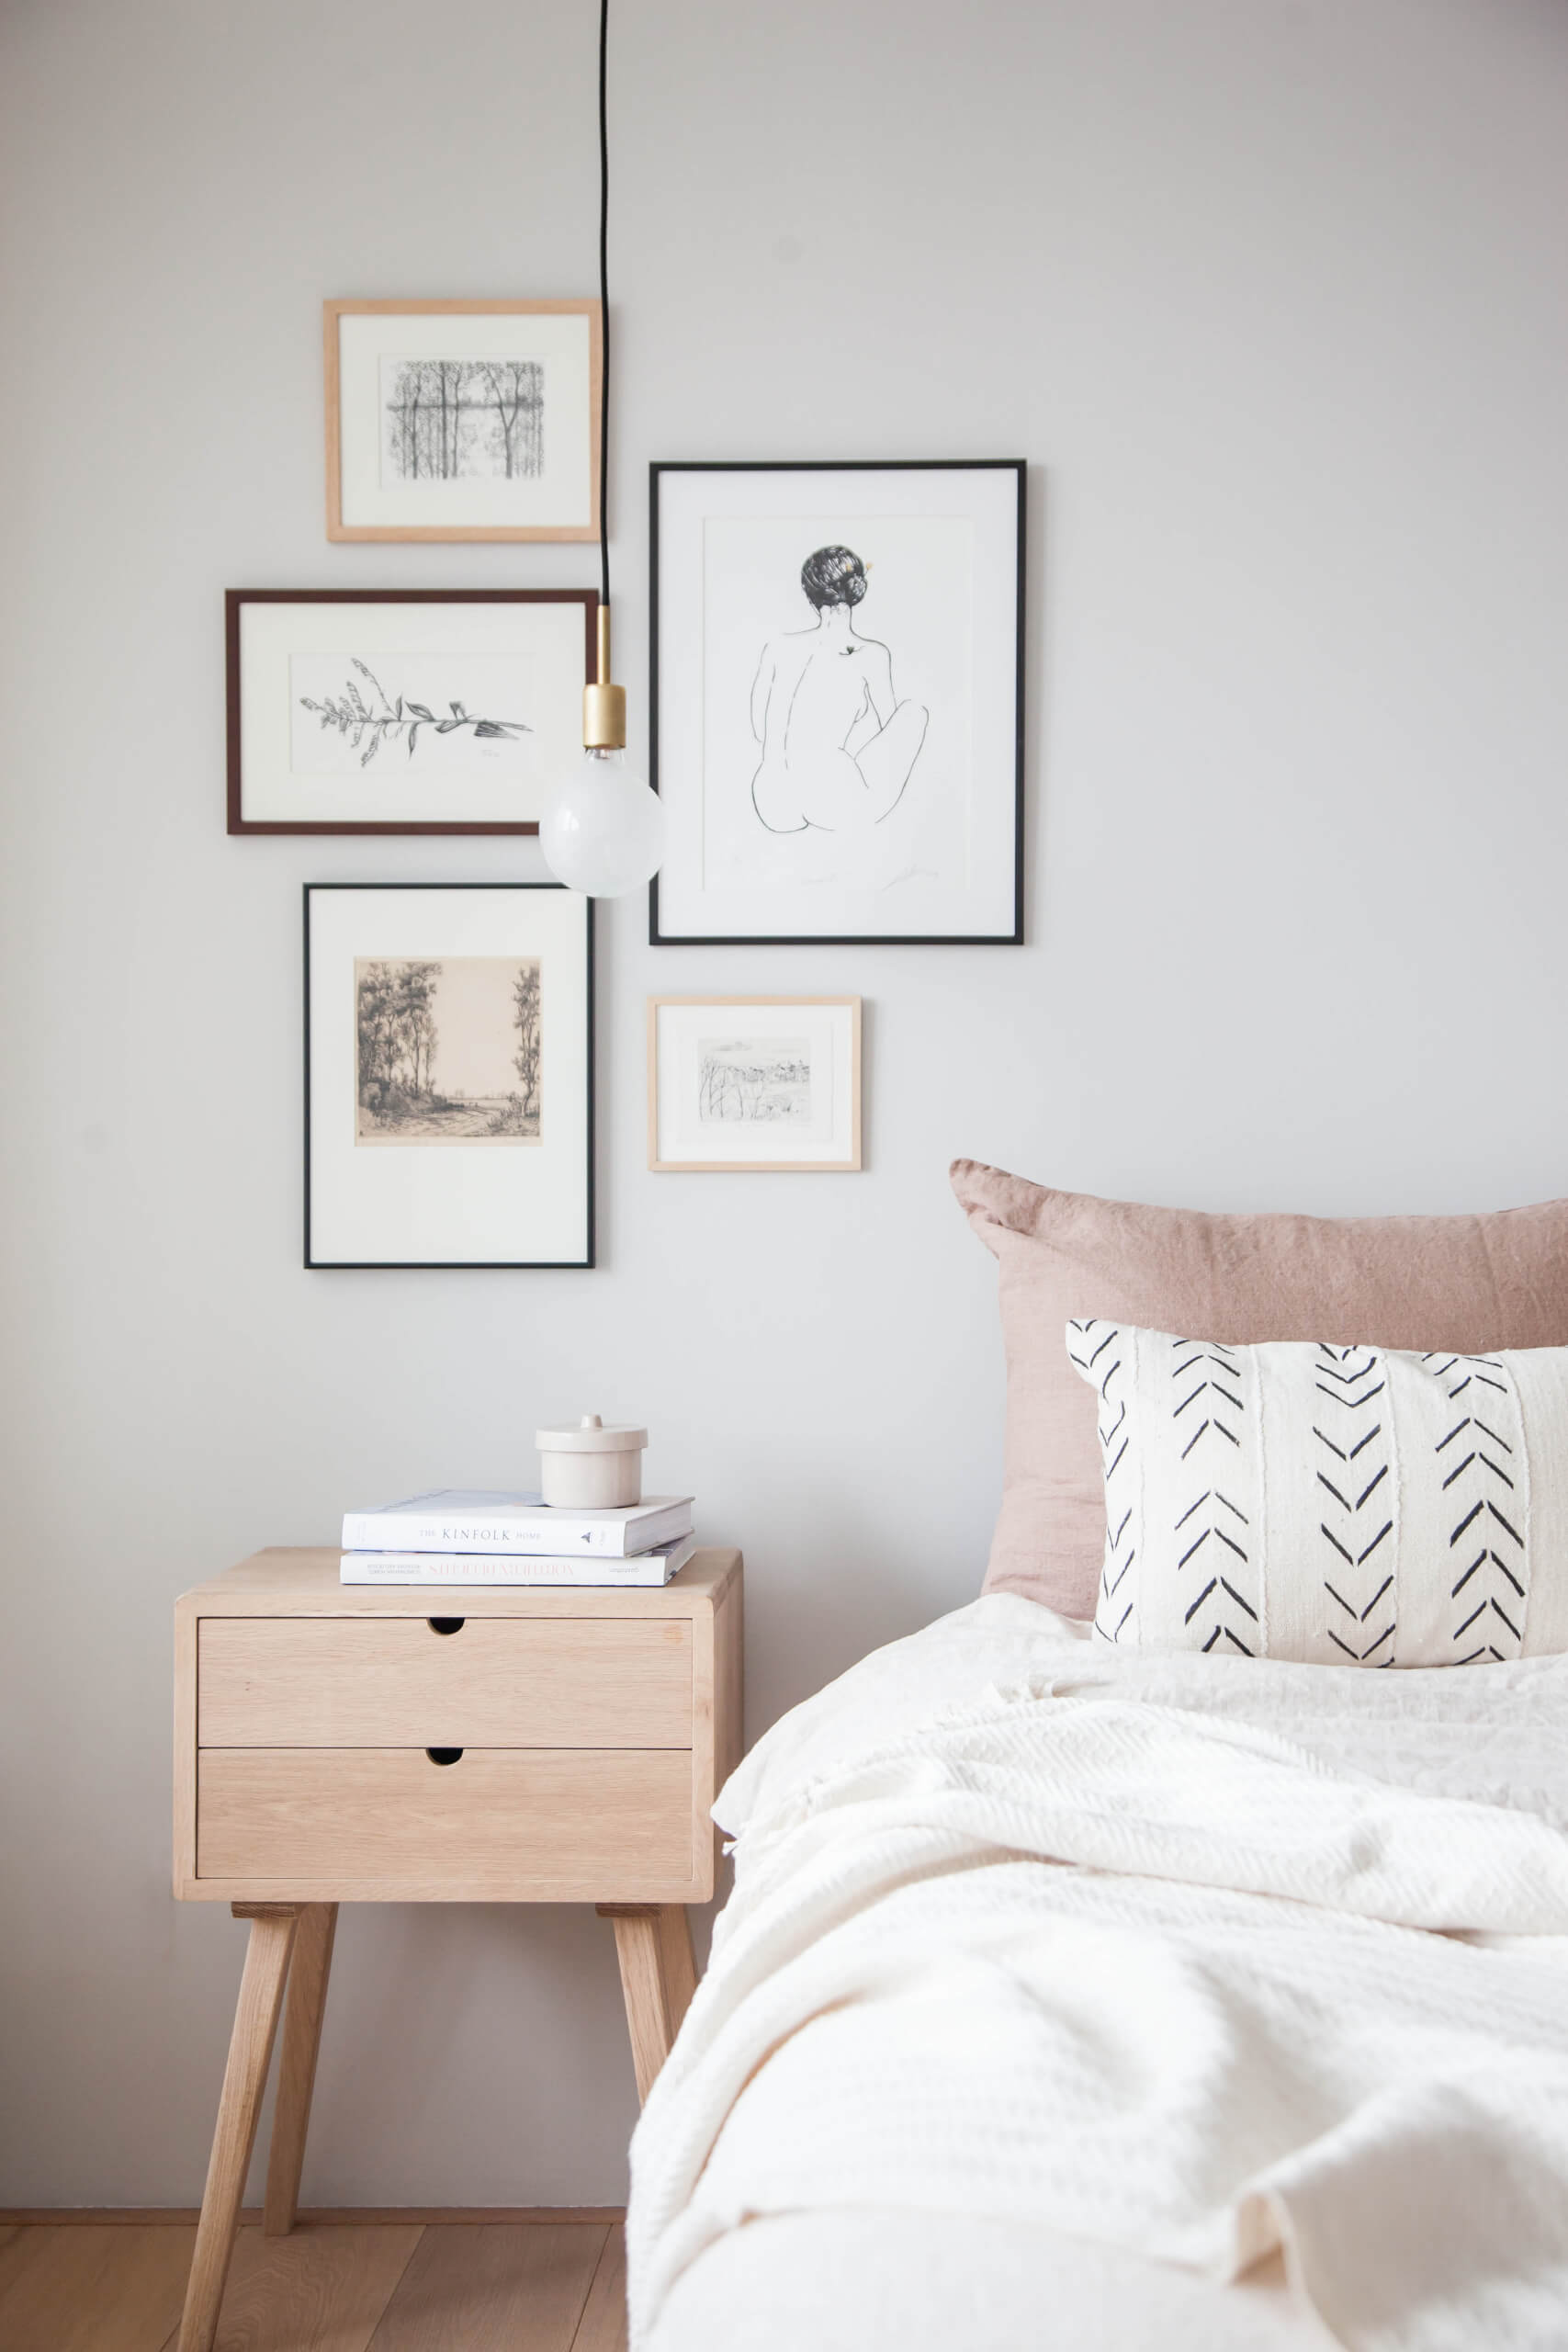 NONAGON-style-n9s-interior-hacks-better-nights-sleep-home-bedroom-bed-gallery-wall-art-picture-illustration